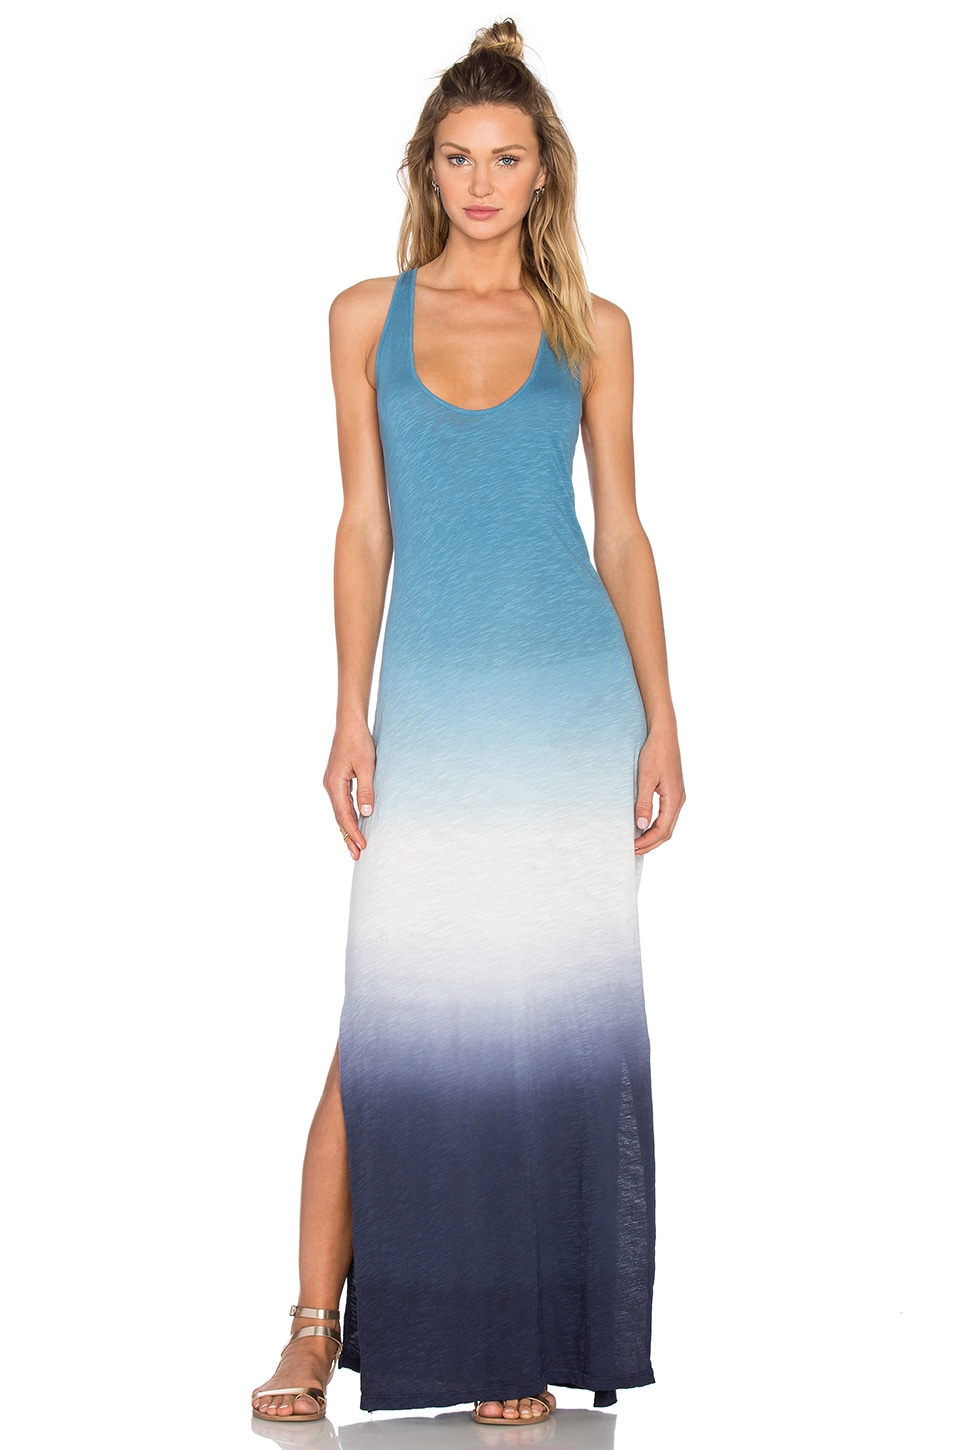 Soft Joie Narda Ombre Maxi Dress in Peacoat